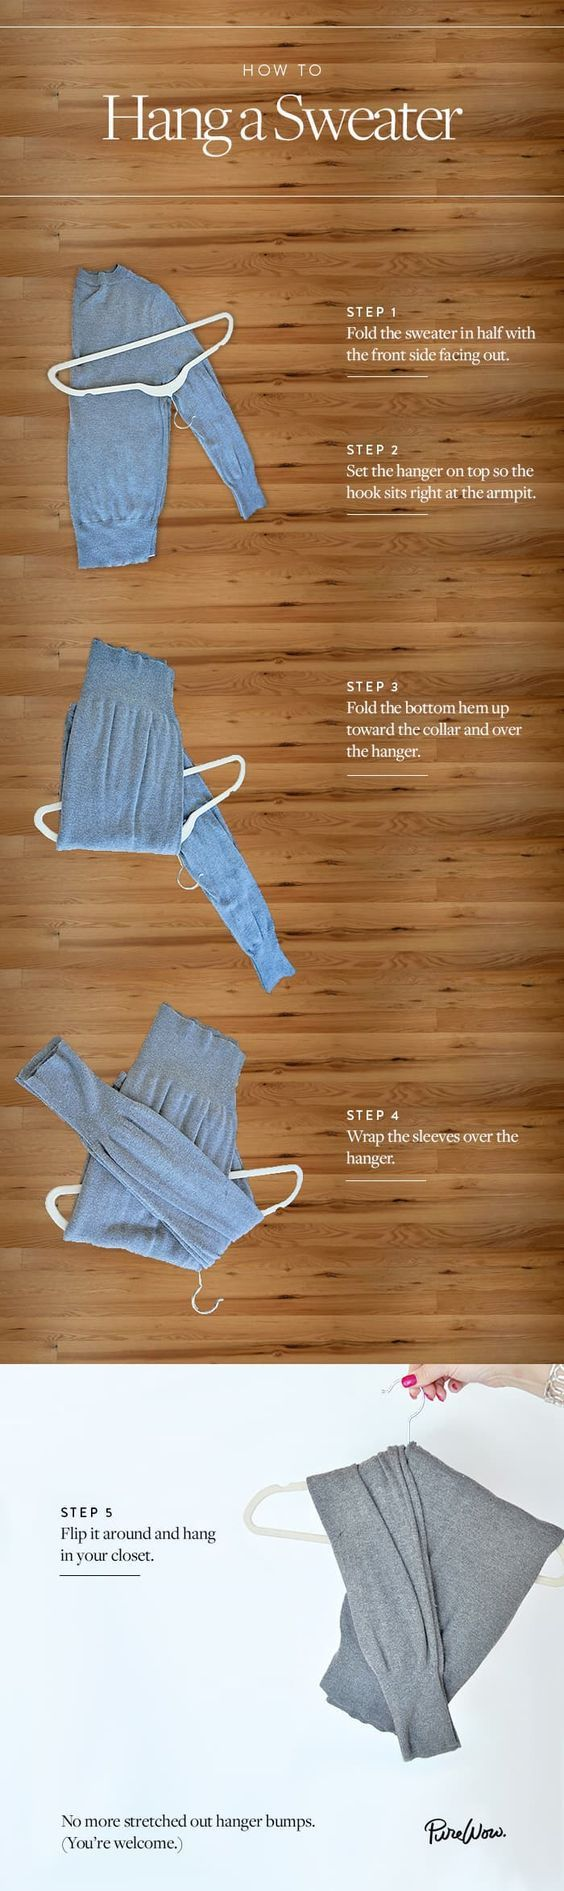 How to hang your sweaters so they don't stretch